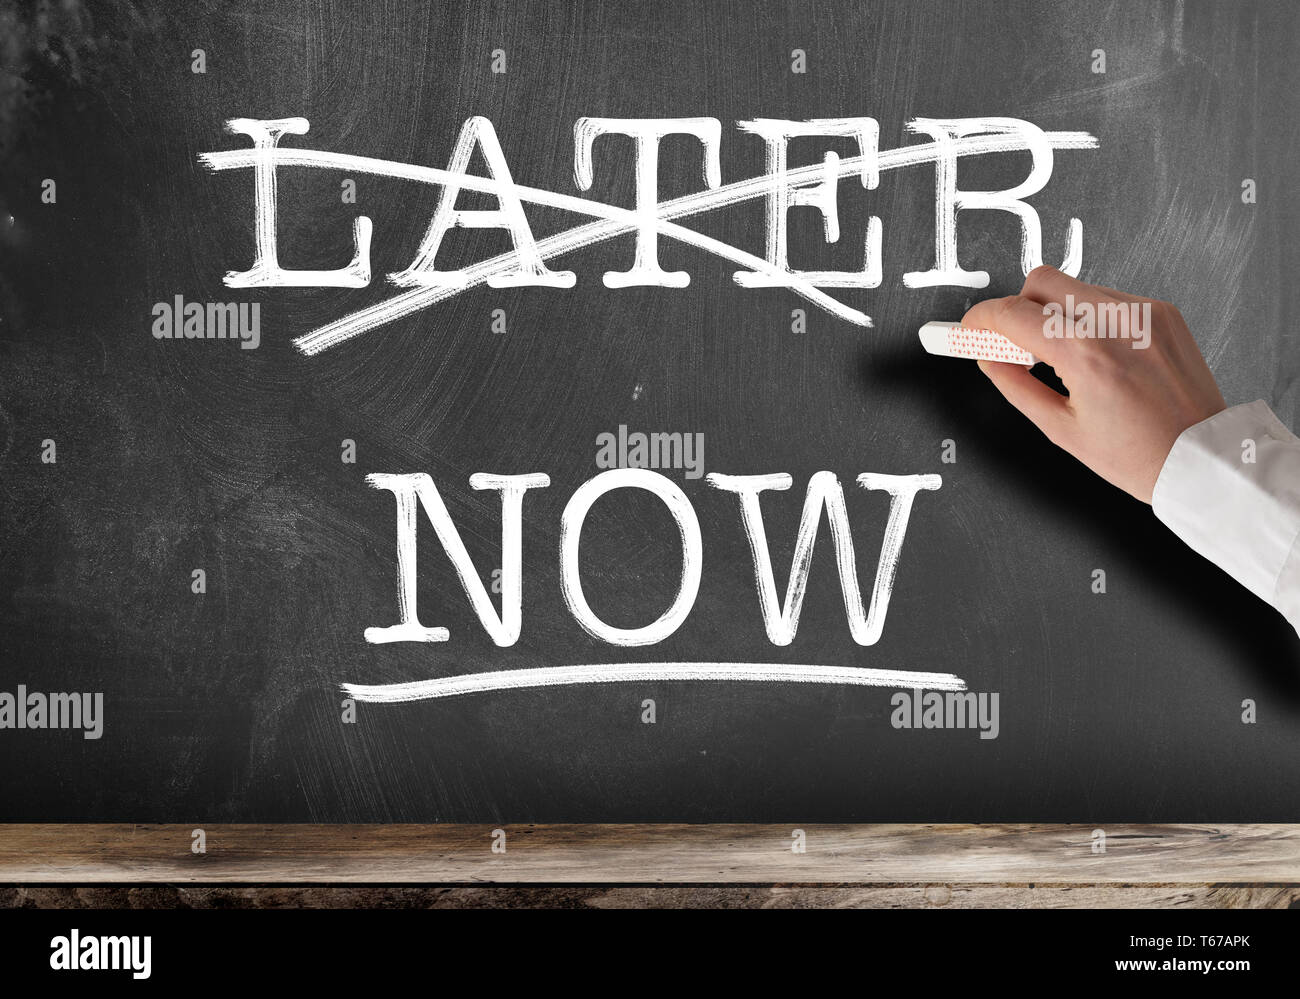 words NOW and LATER written on blackboard with LATER struck out anti procrastination concept - Stock Image